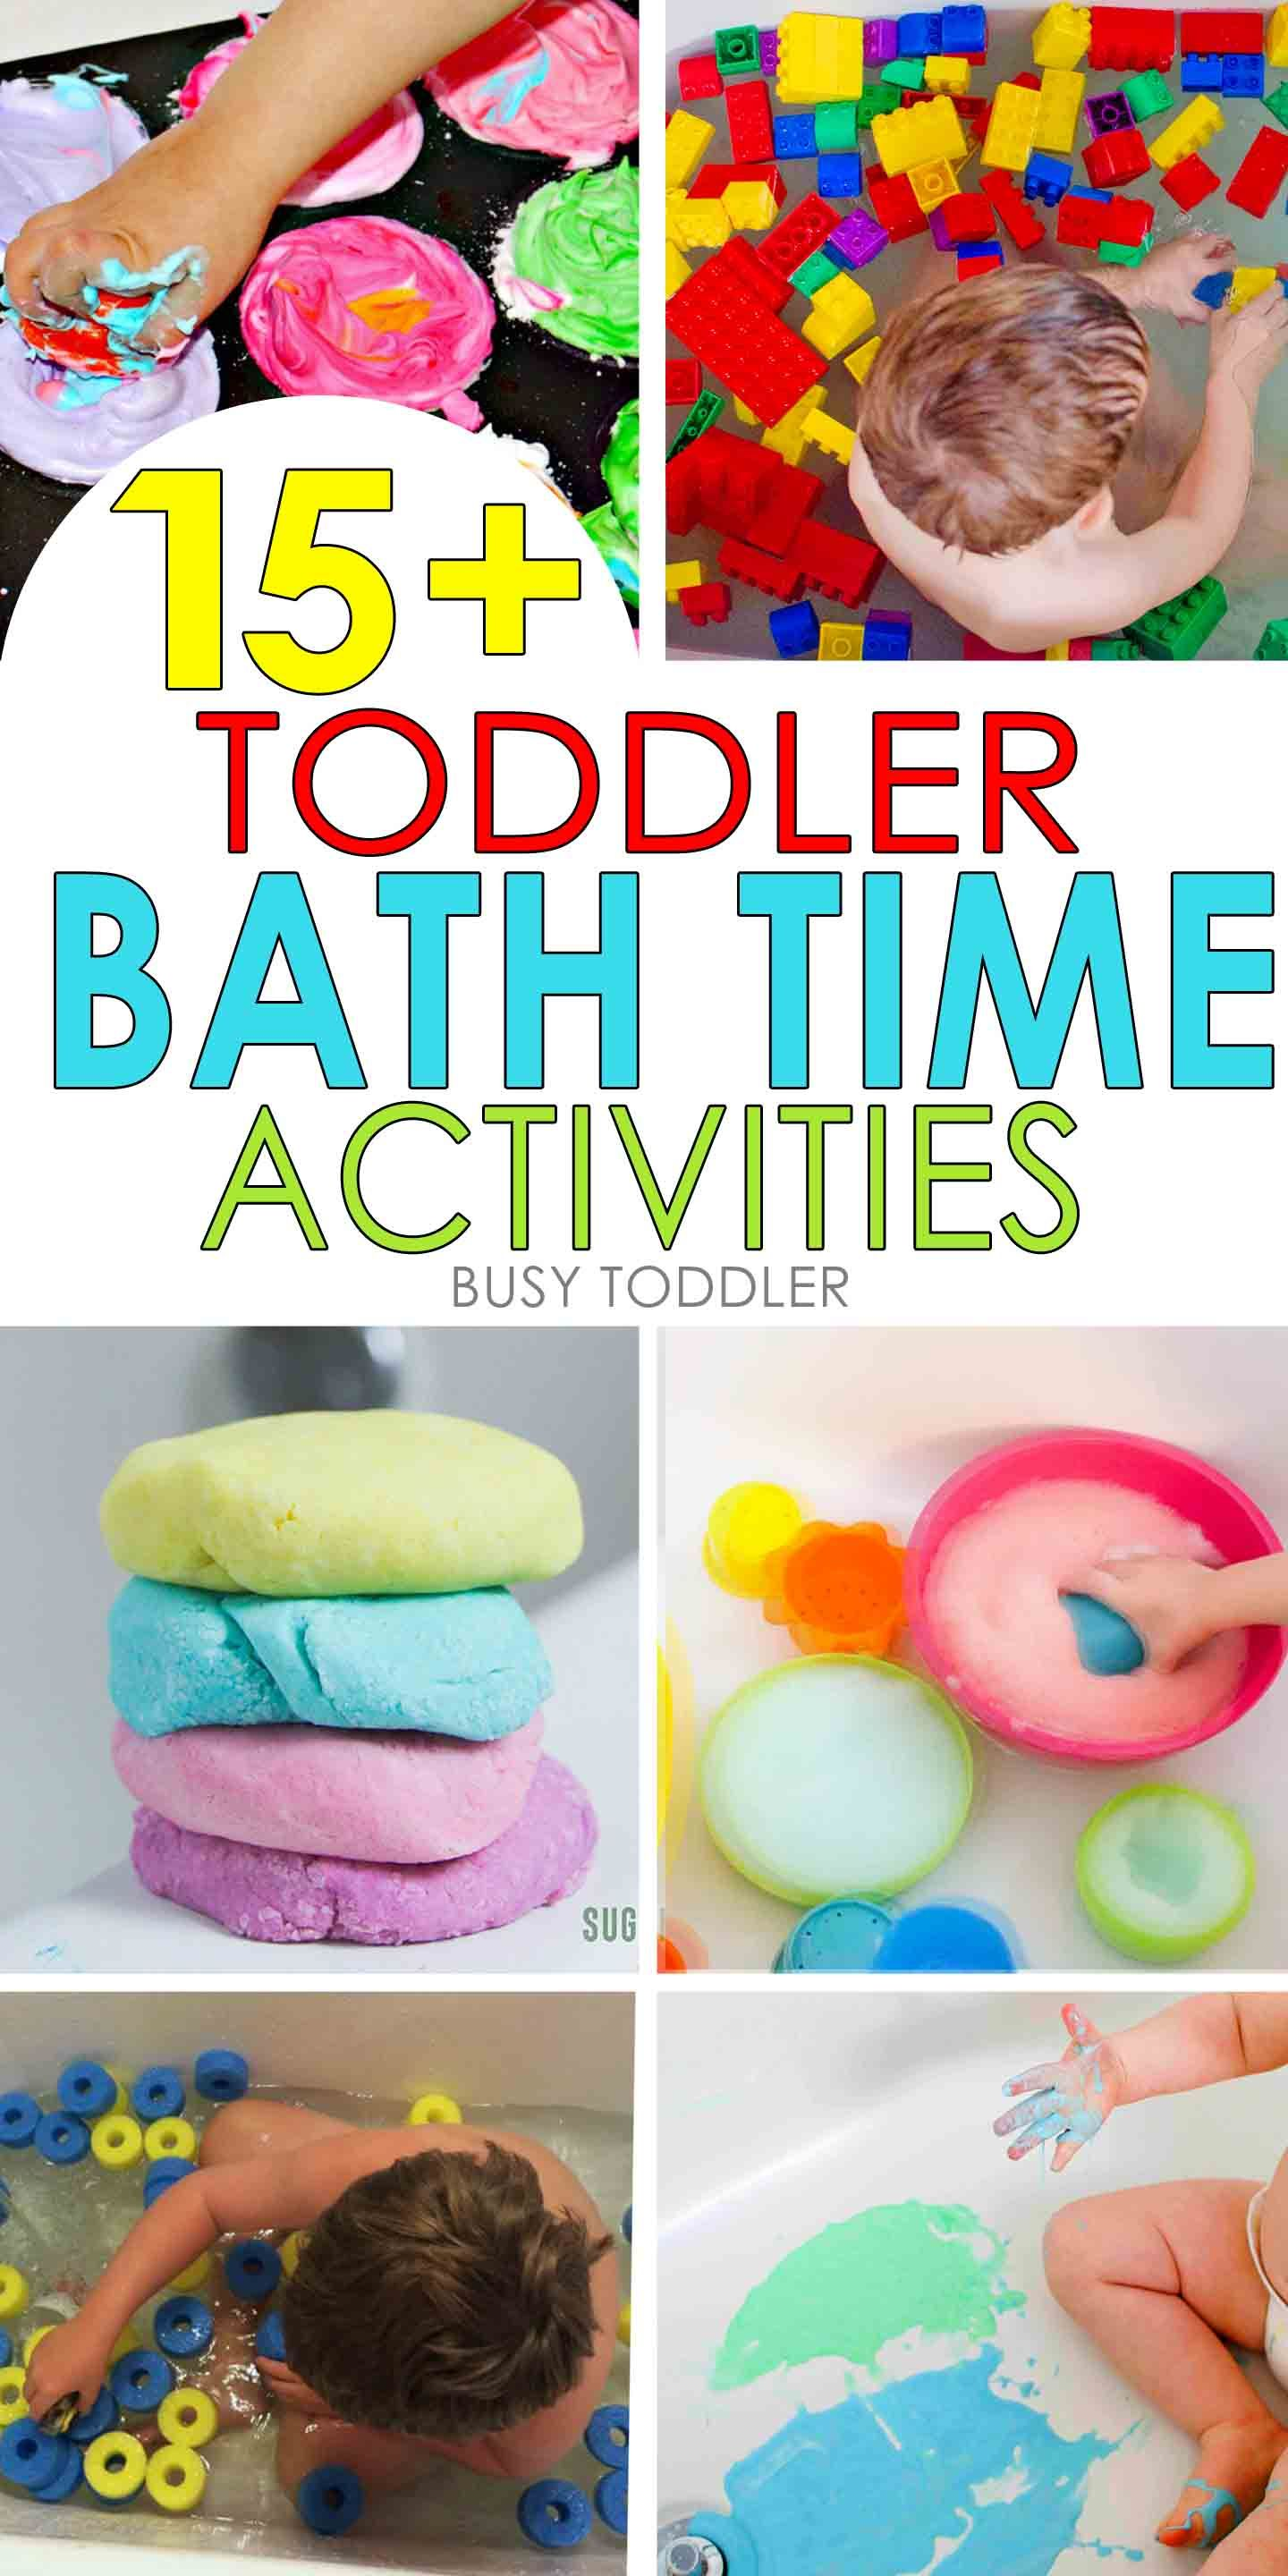 15 Toddler Bath Time Activities